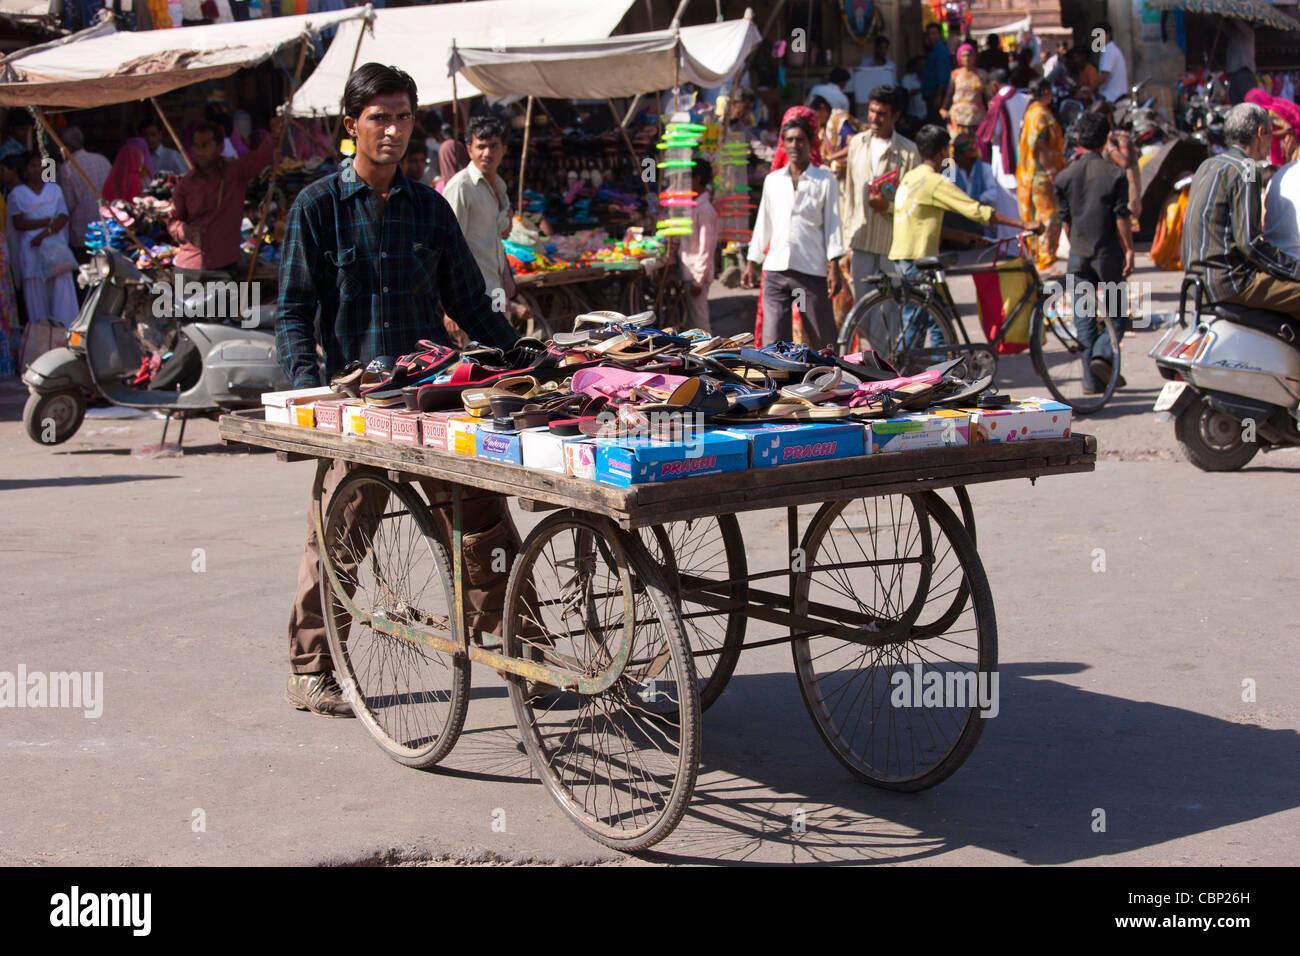 Street scene at Sardar Market at Girdikot, Jodhpur, Rajasthan, Northern India - Stock Image